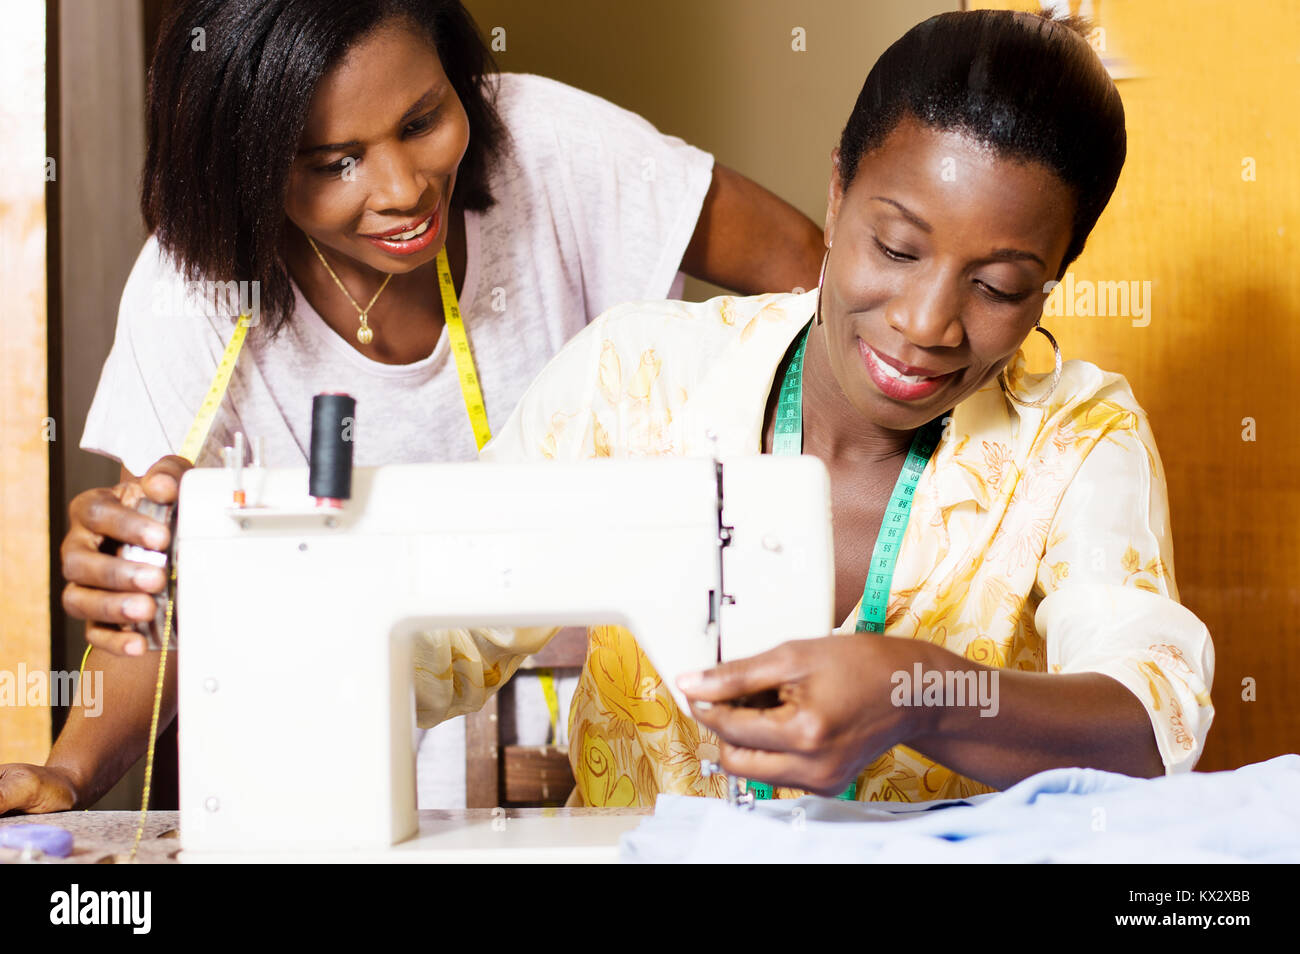 The professional seamstress sews and his trainee assists from behind. - Stock Image